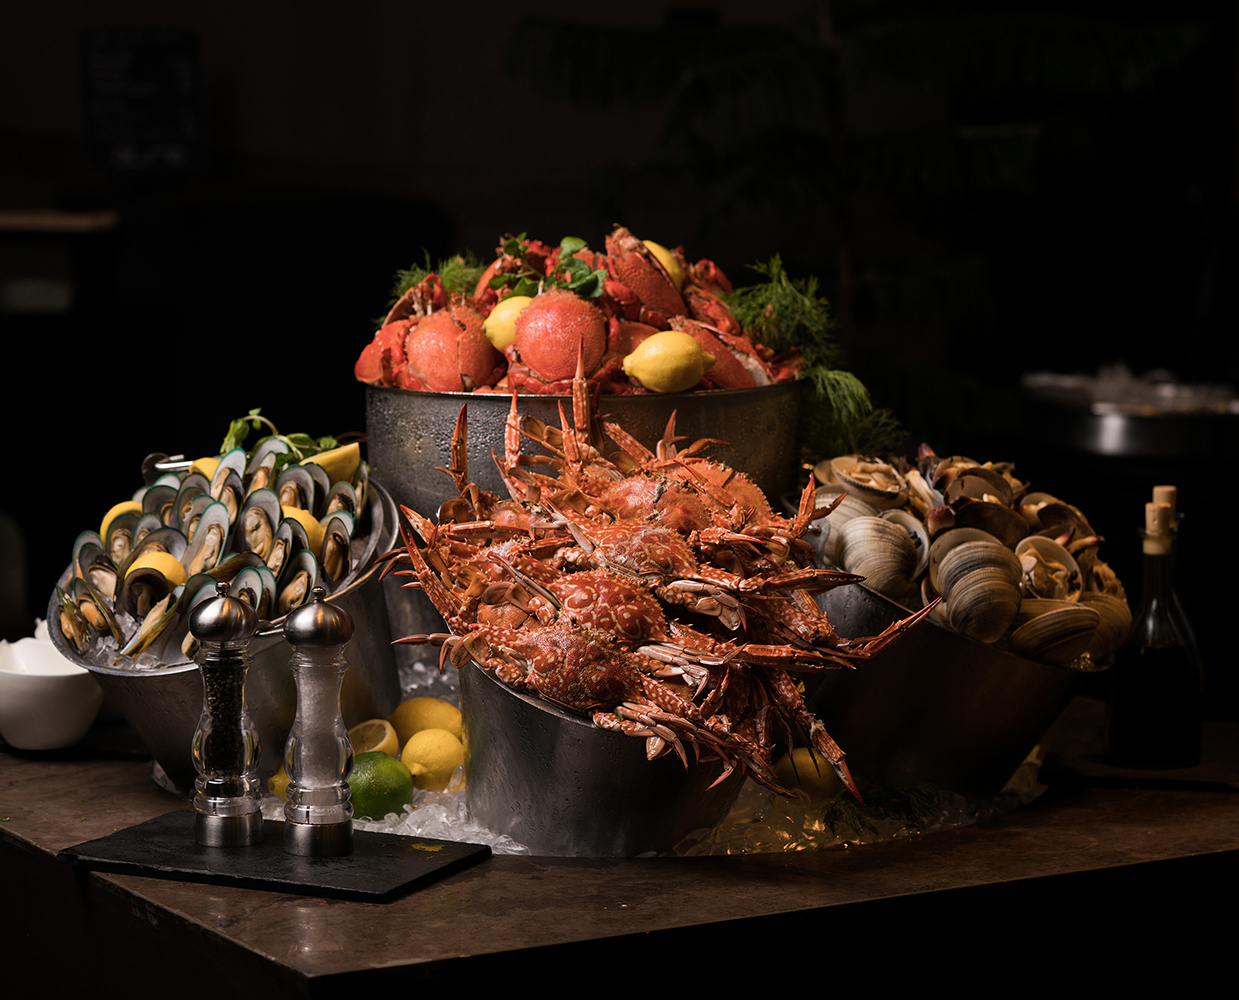 Exquisite fresh seafood at the Seafood Station